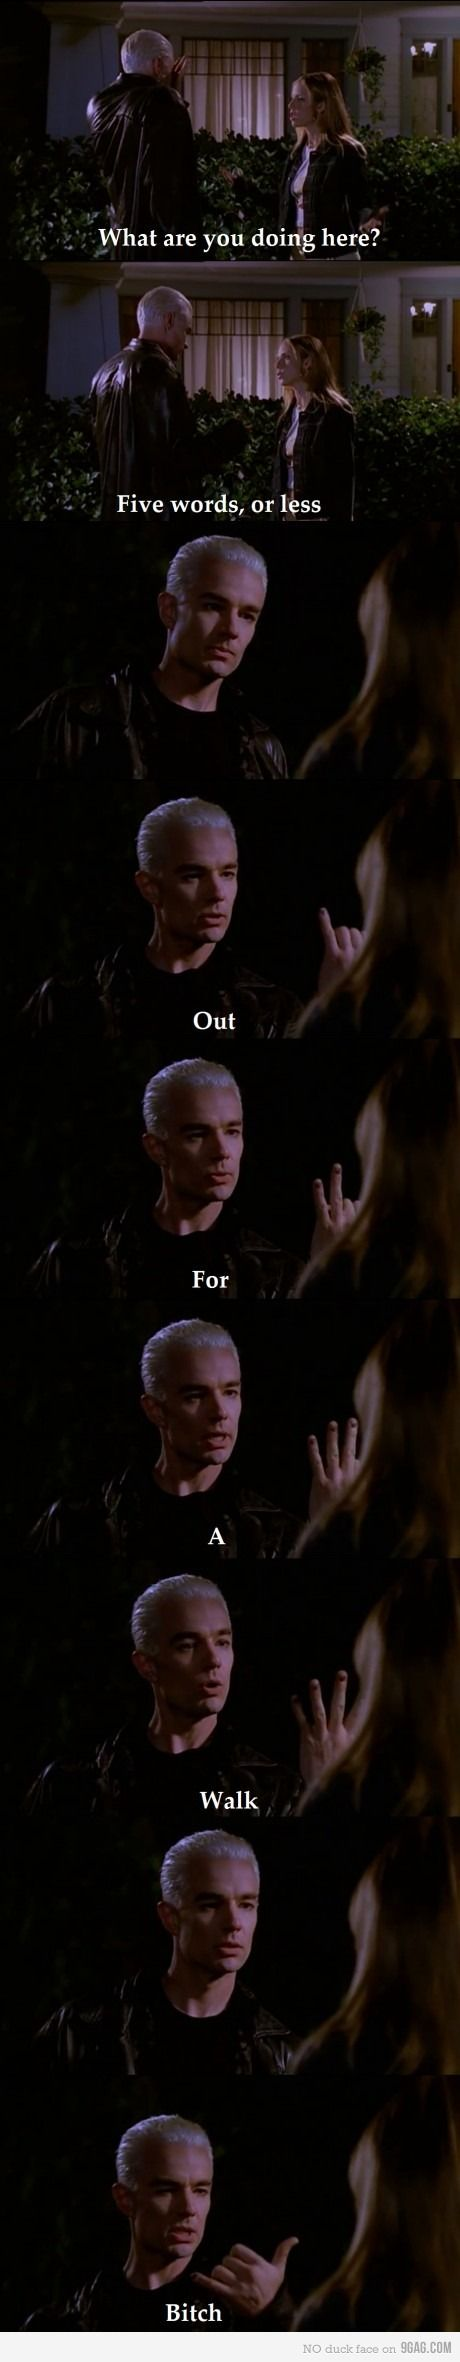 Love this scene from Buffy!